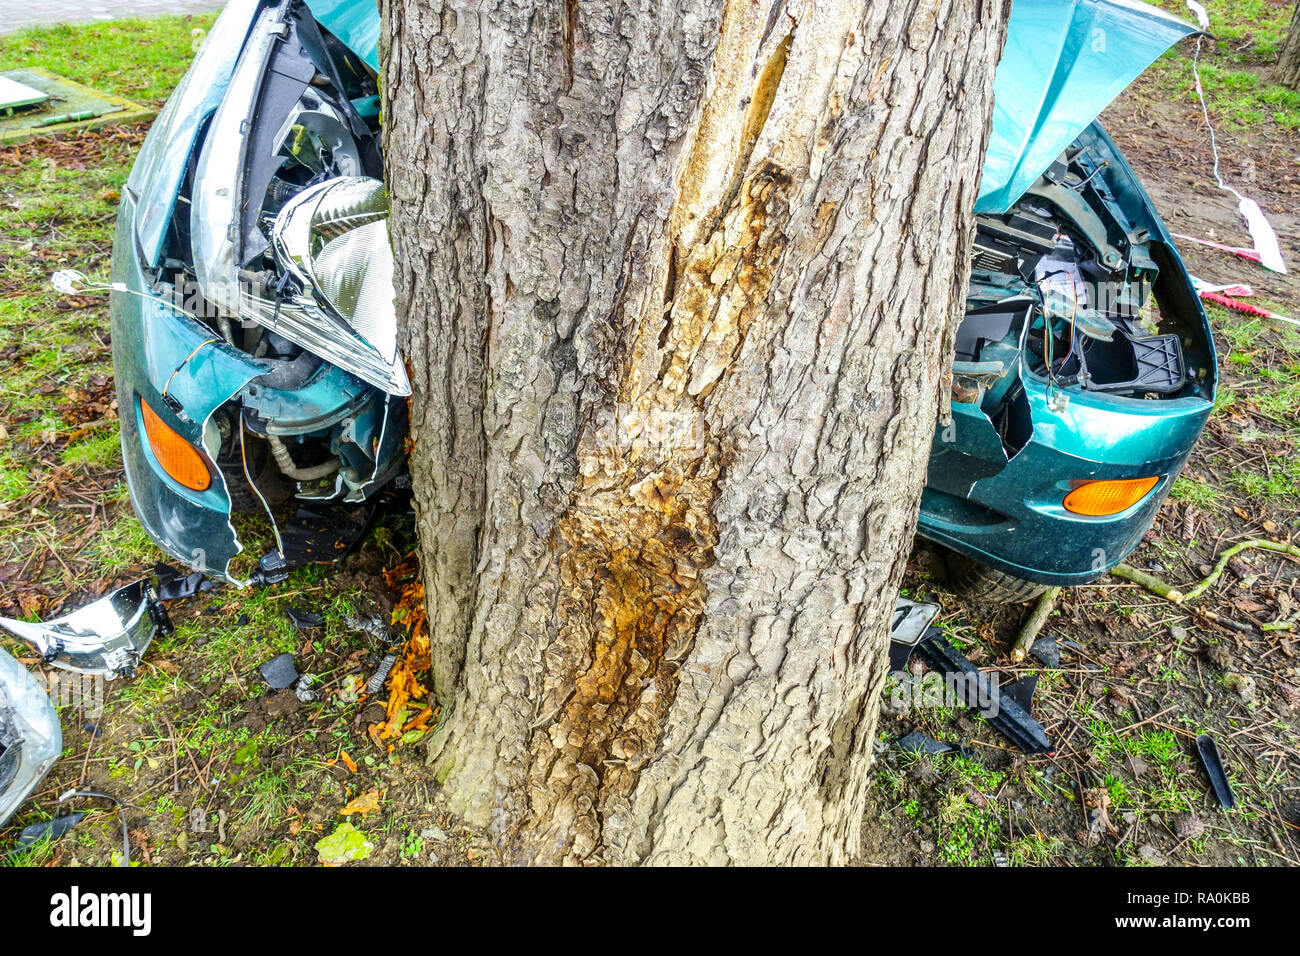 Car crash tree, Crashed car to a tree trunk, Czech Republic - Stock Image